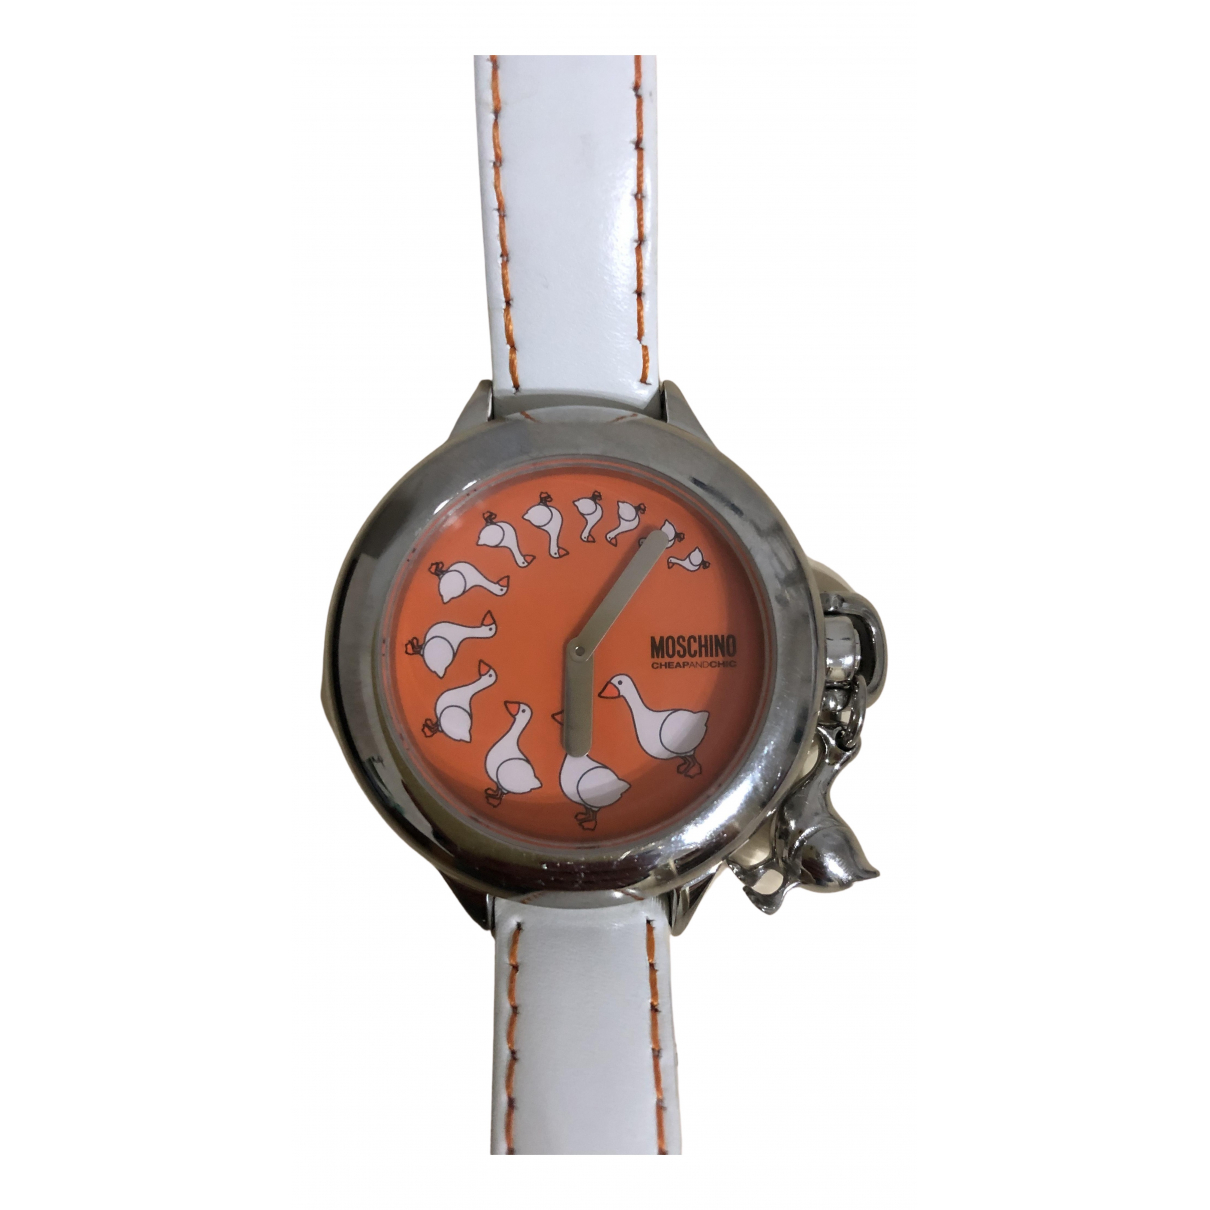 Moschino Cheap And Chic N White Steel watch for Women N